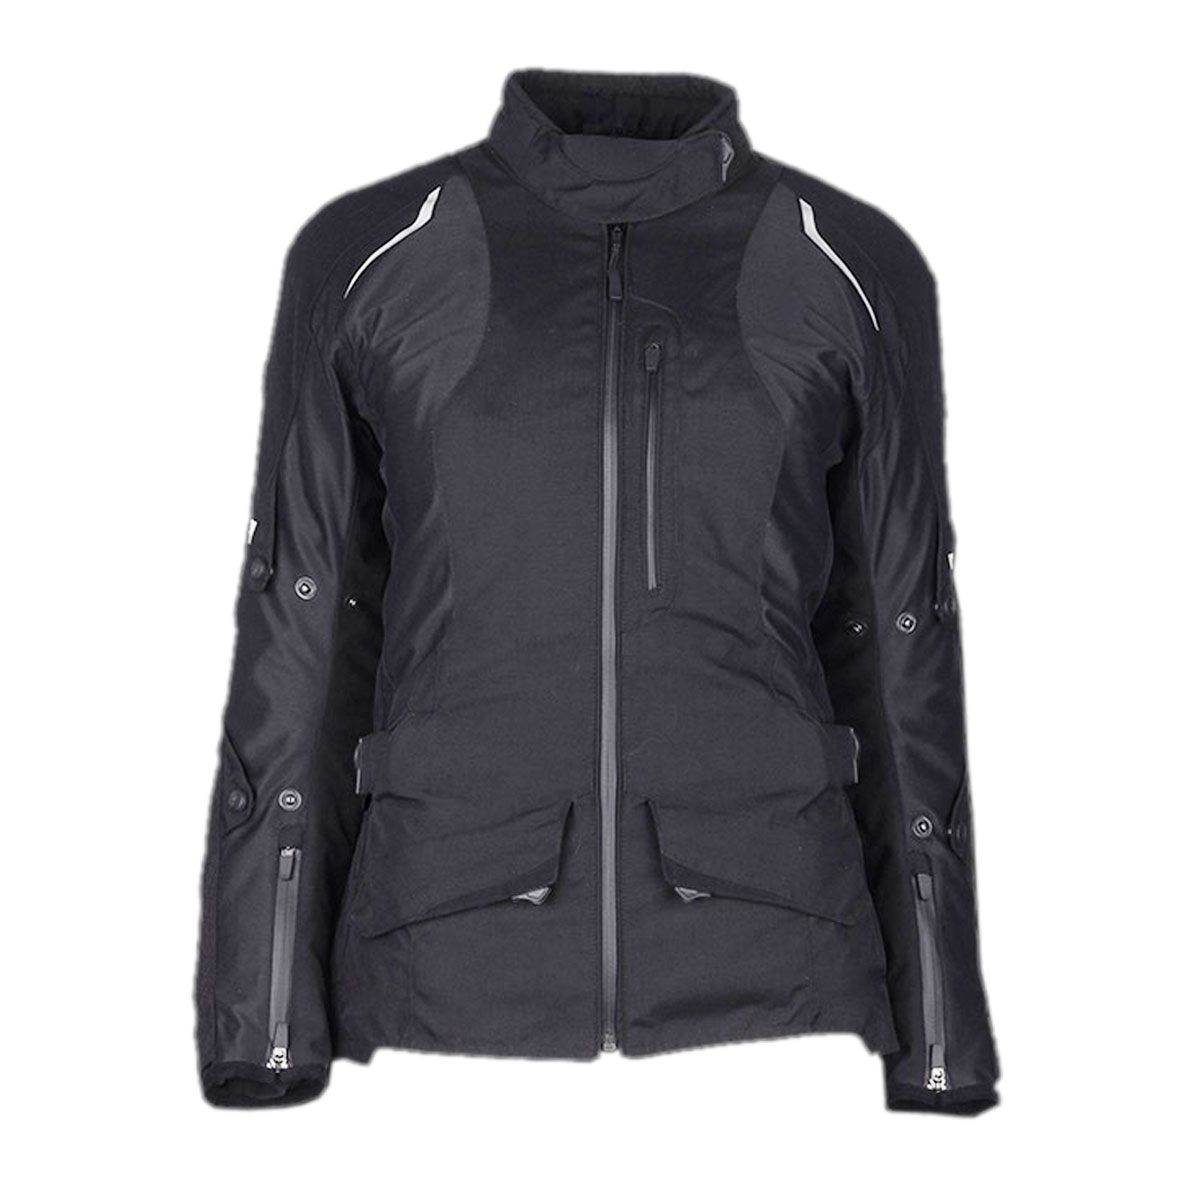 UNIQUE BLACK FEMALE CARDURA JACKET